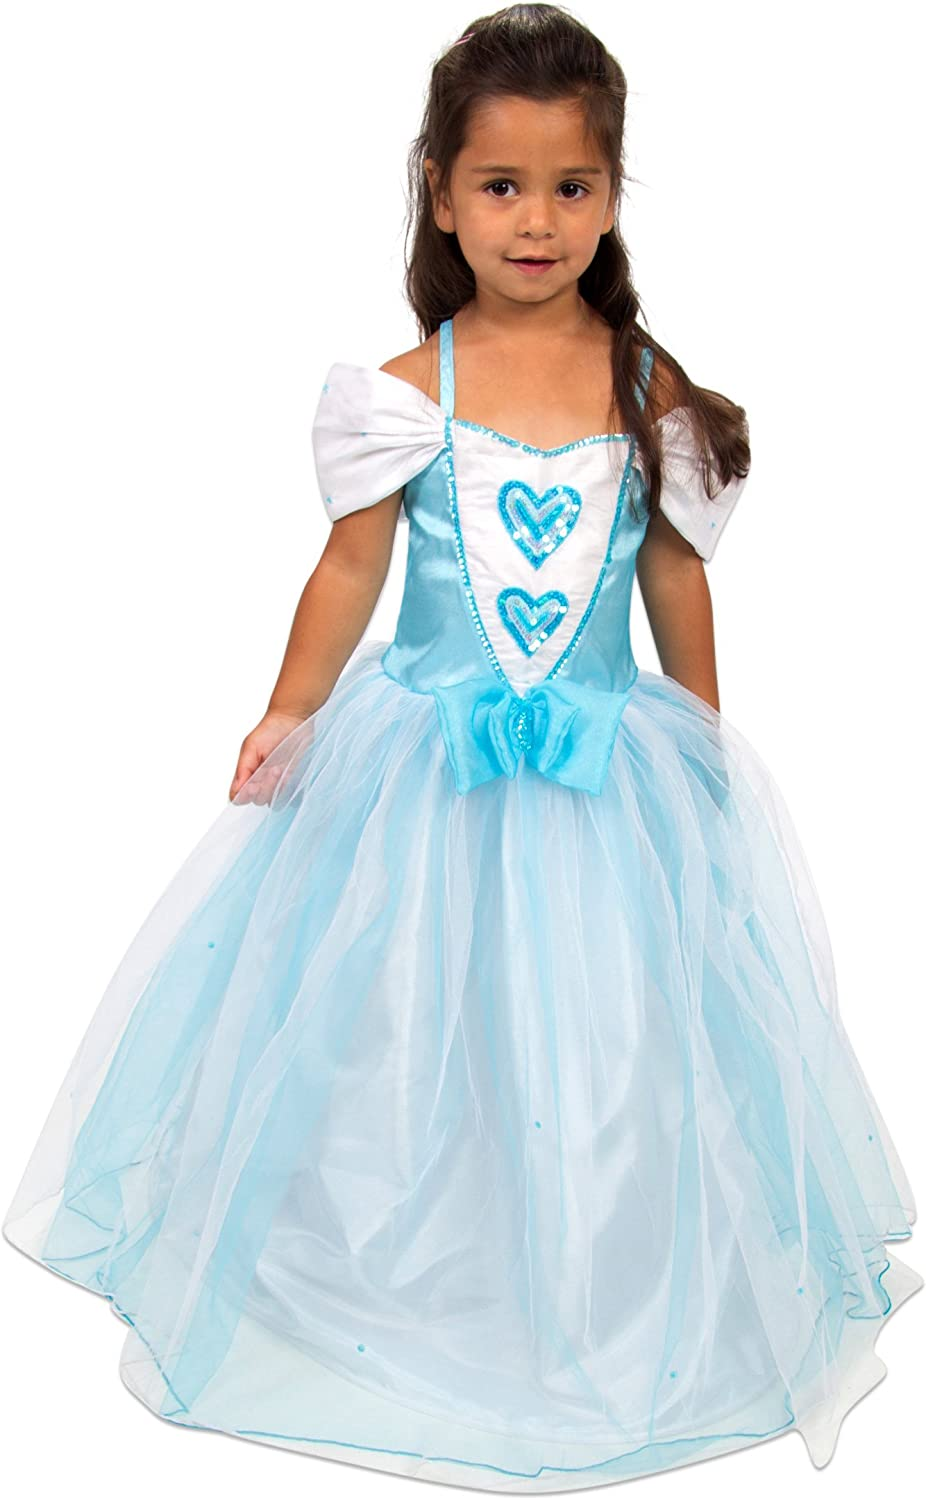 Lucy Locket Ice Princess Dress